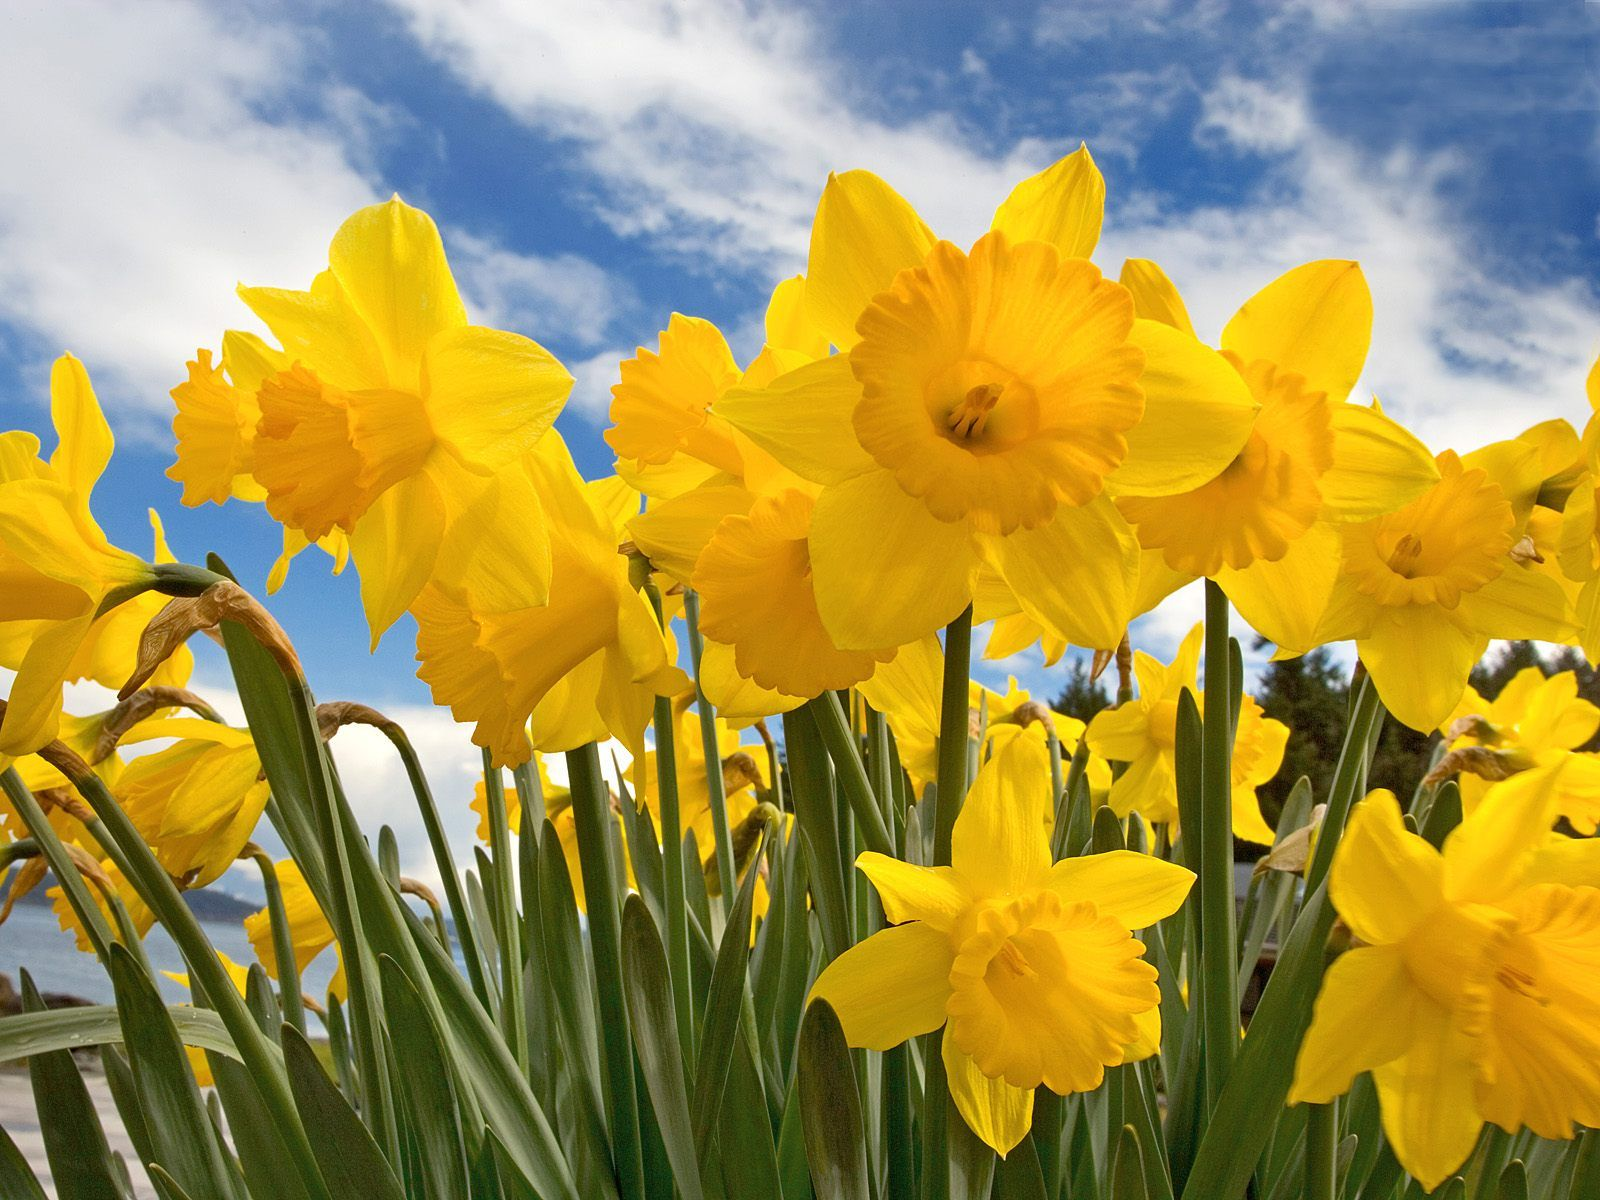 Scenery spring pictures spring pictures daffodils leave a reply cancel reply mightylinksfo